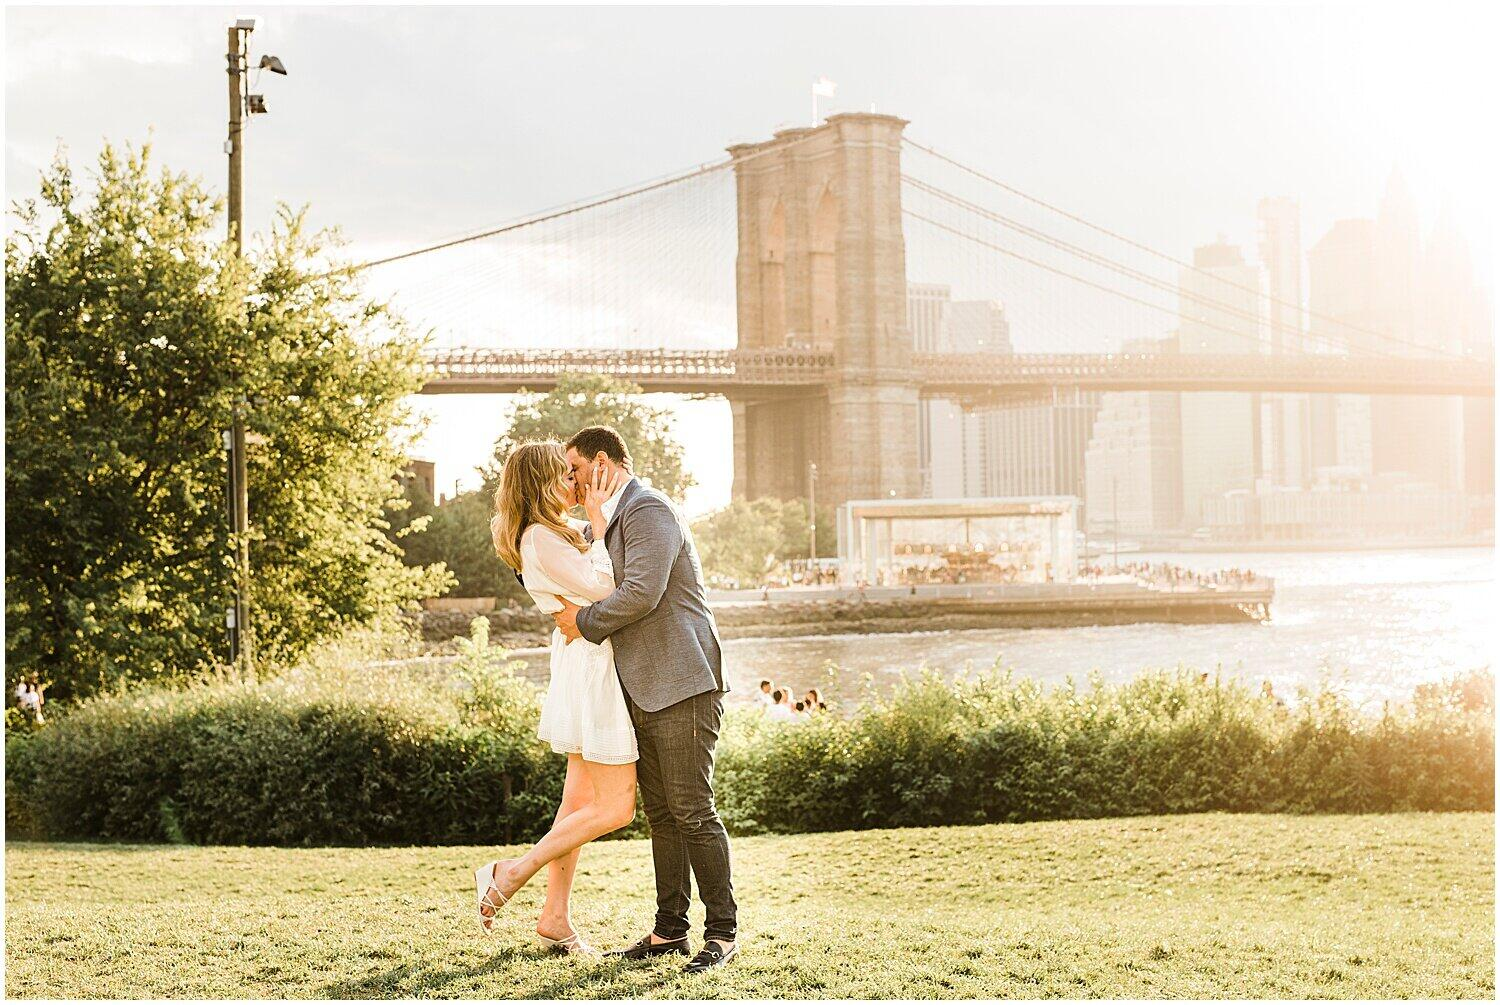 An engagement session photograph of a couple kissing with a bridge as a backdrop.